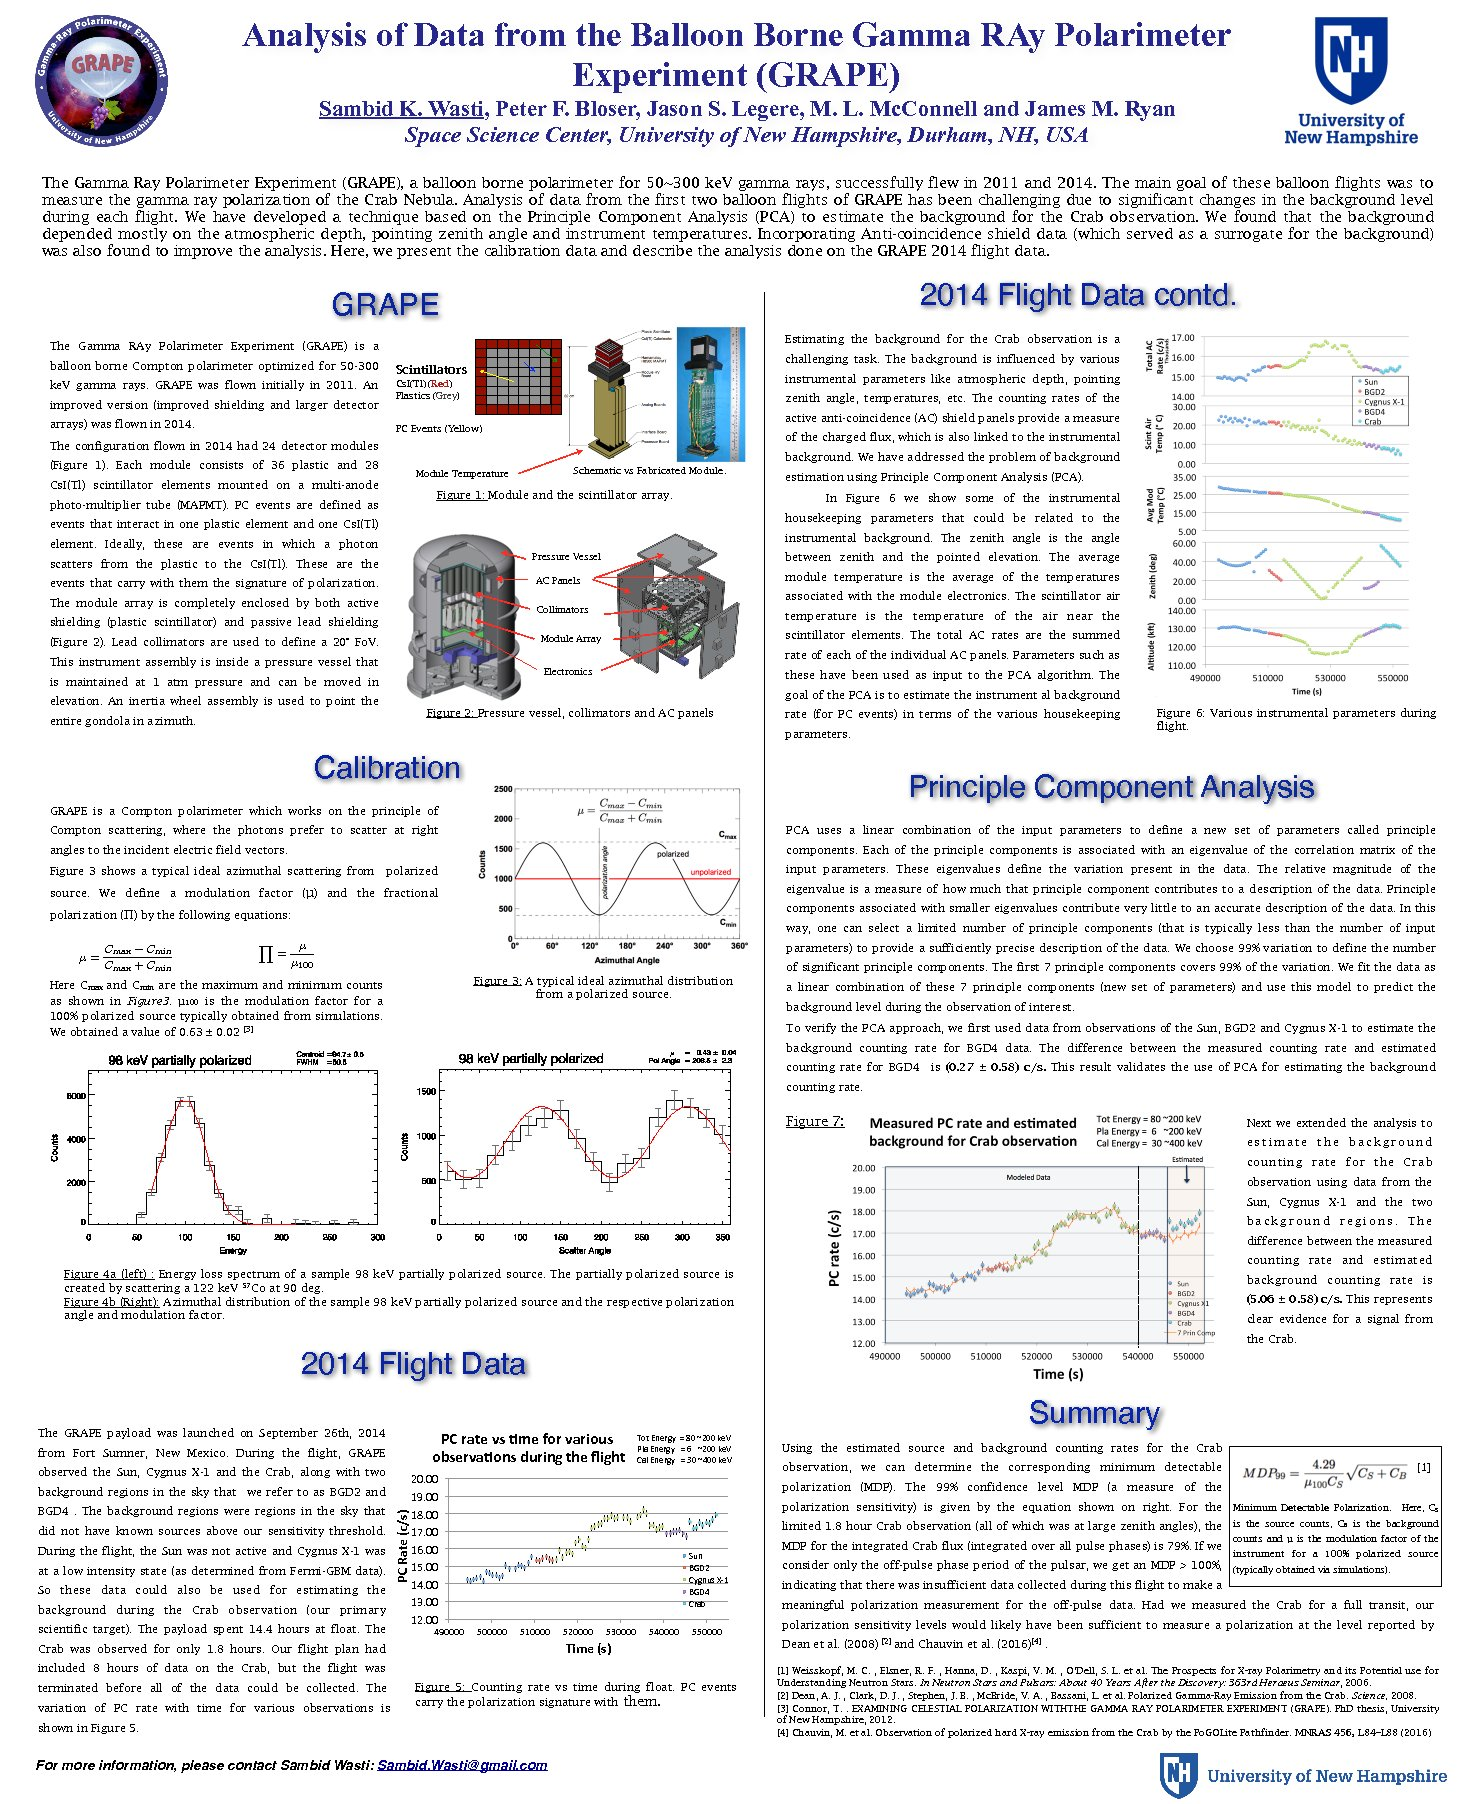 Analysis Of Data From The Balloon Borne Gamma Ray Polarimeter Experiment (Grape) by skg45